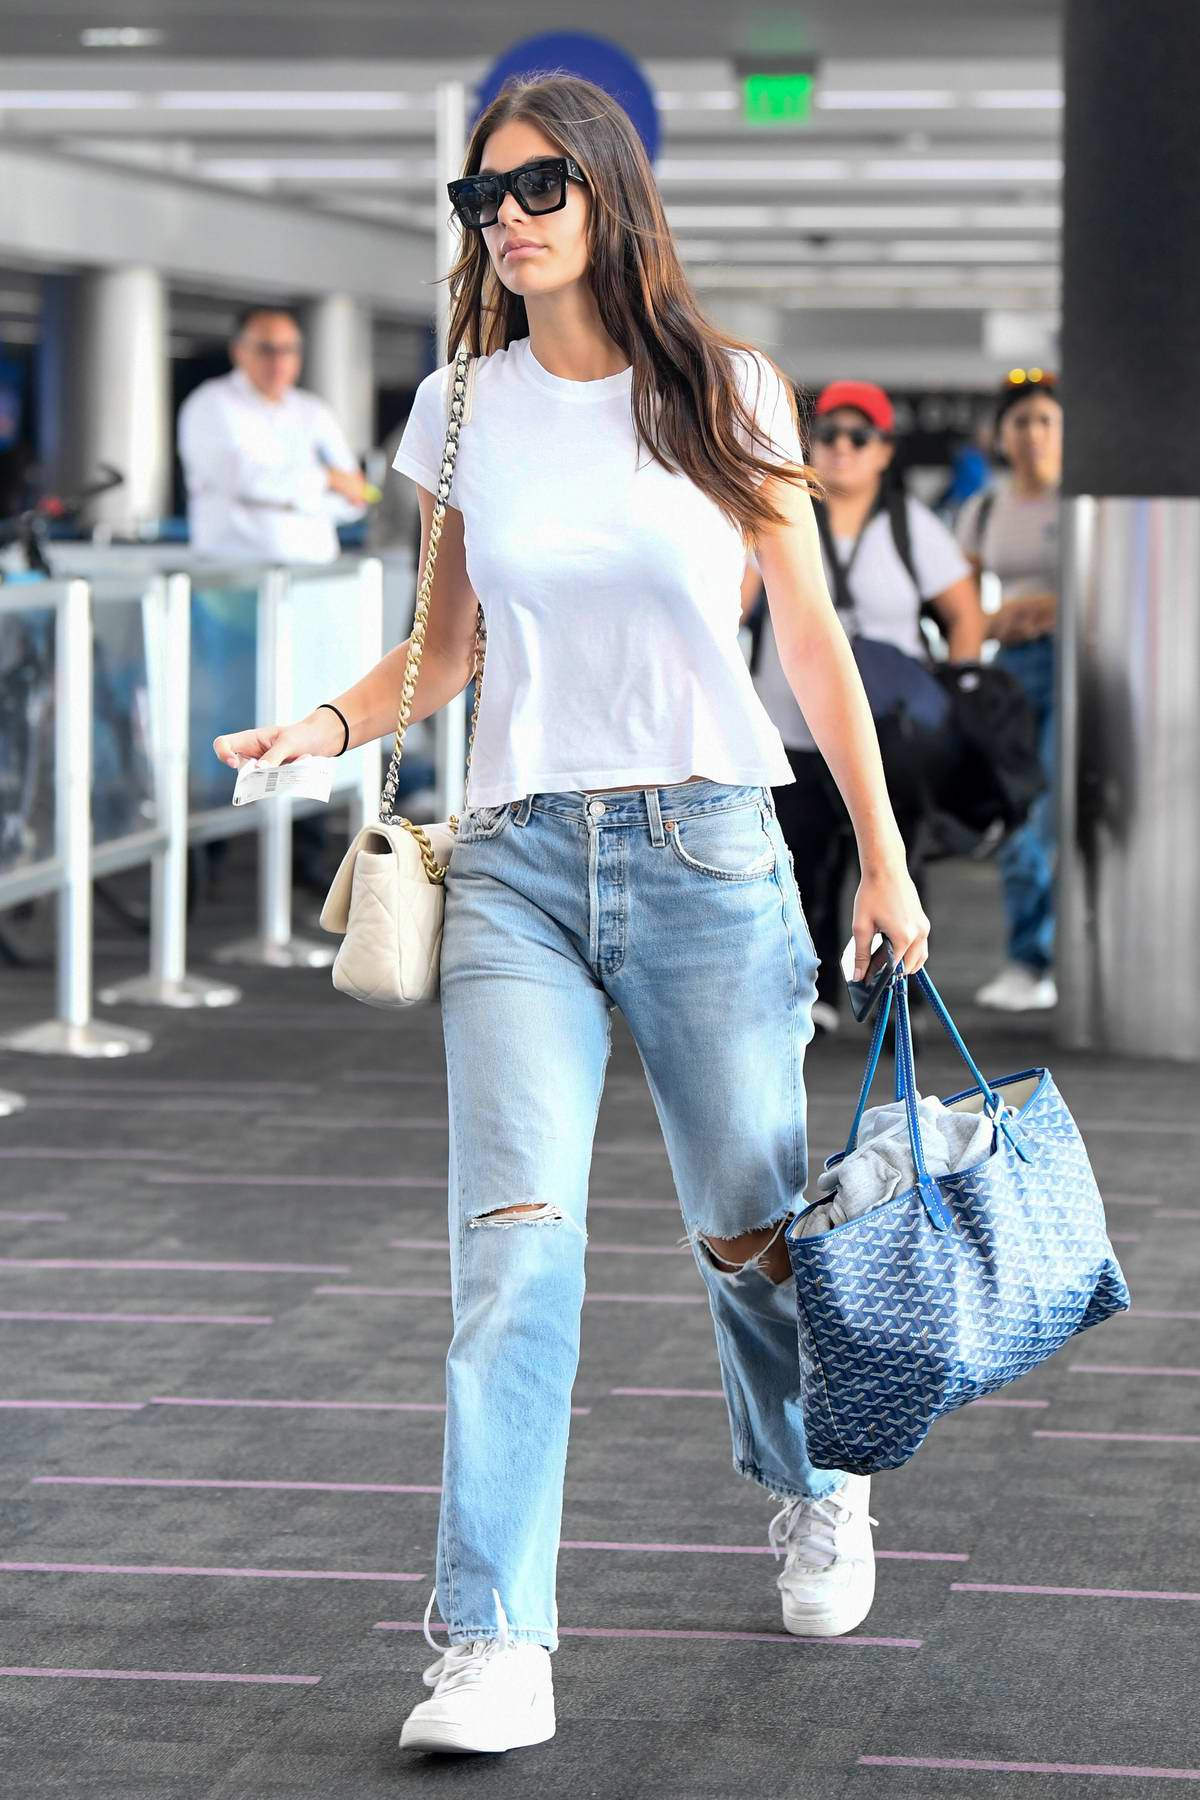 Camila Morrone keeps things casual with a white tee and ripped jeans as she arrives at LAX Airport in Los Angeles